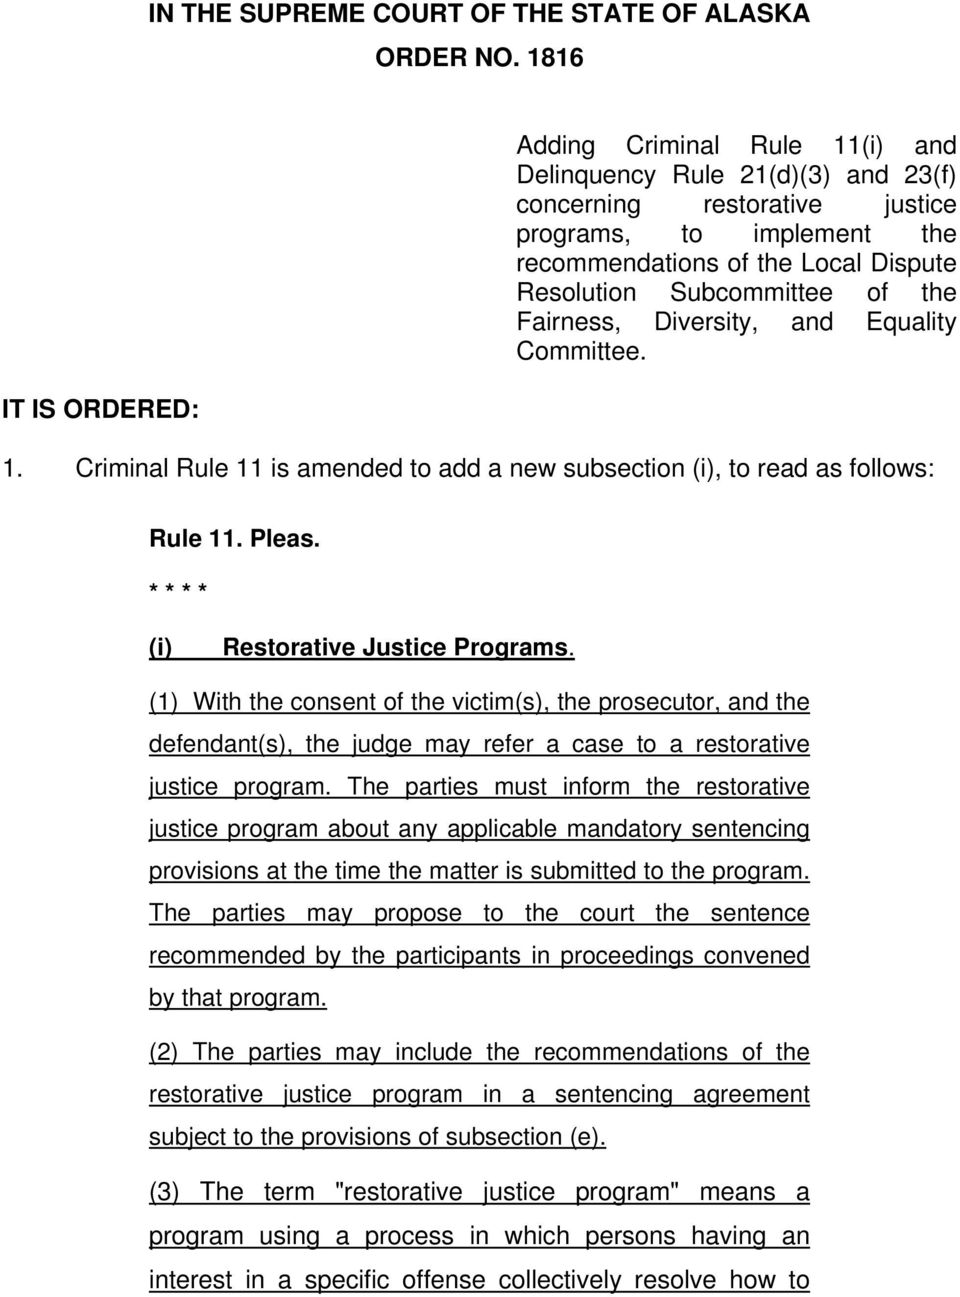 Subcommittee of the Fairness, Diversity, and Equality Committee. 1. Criminal Rule 11 is amended to add a new subsection (i), to read as follows: Rule 11. Pleas. (i) Restorative Justice Programs.